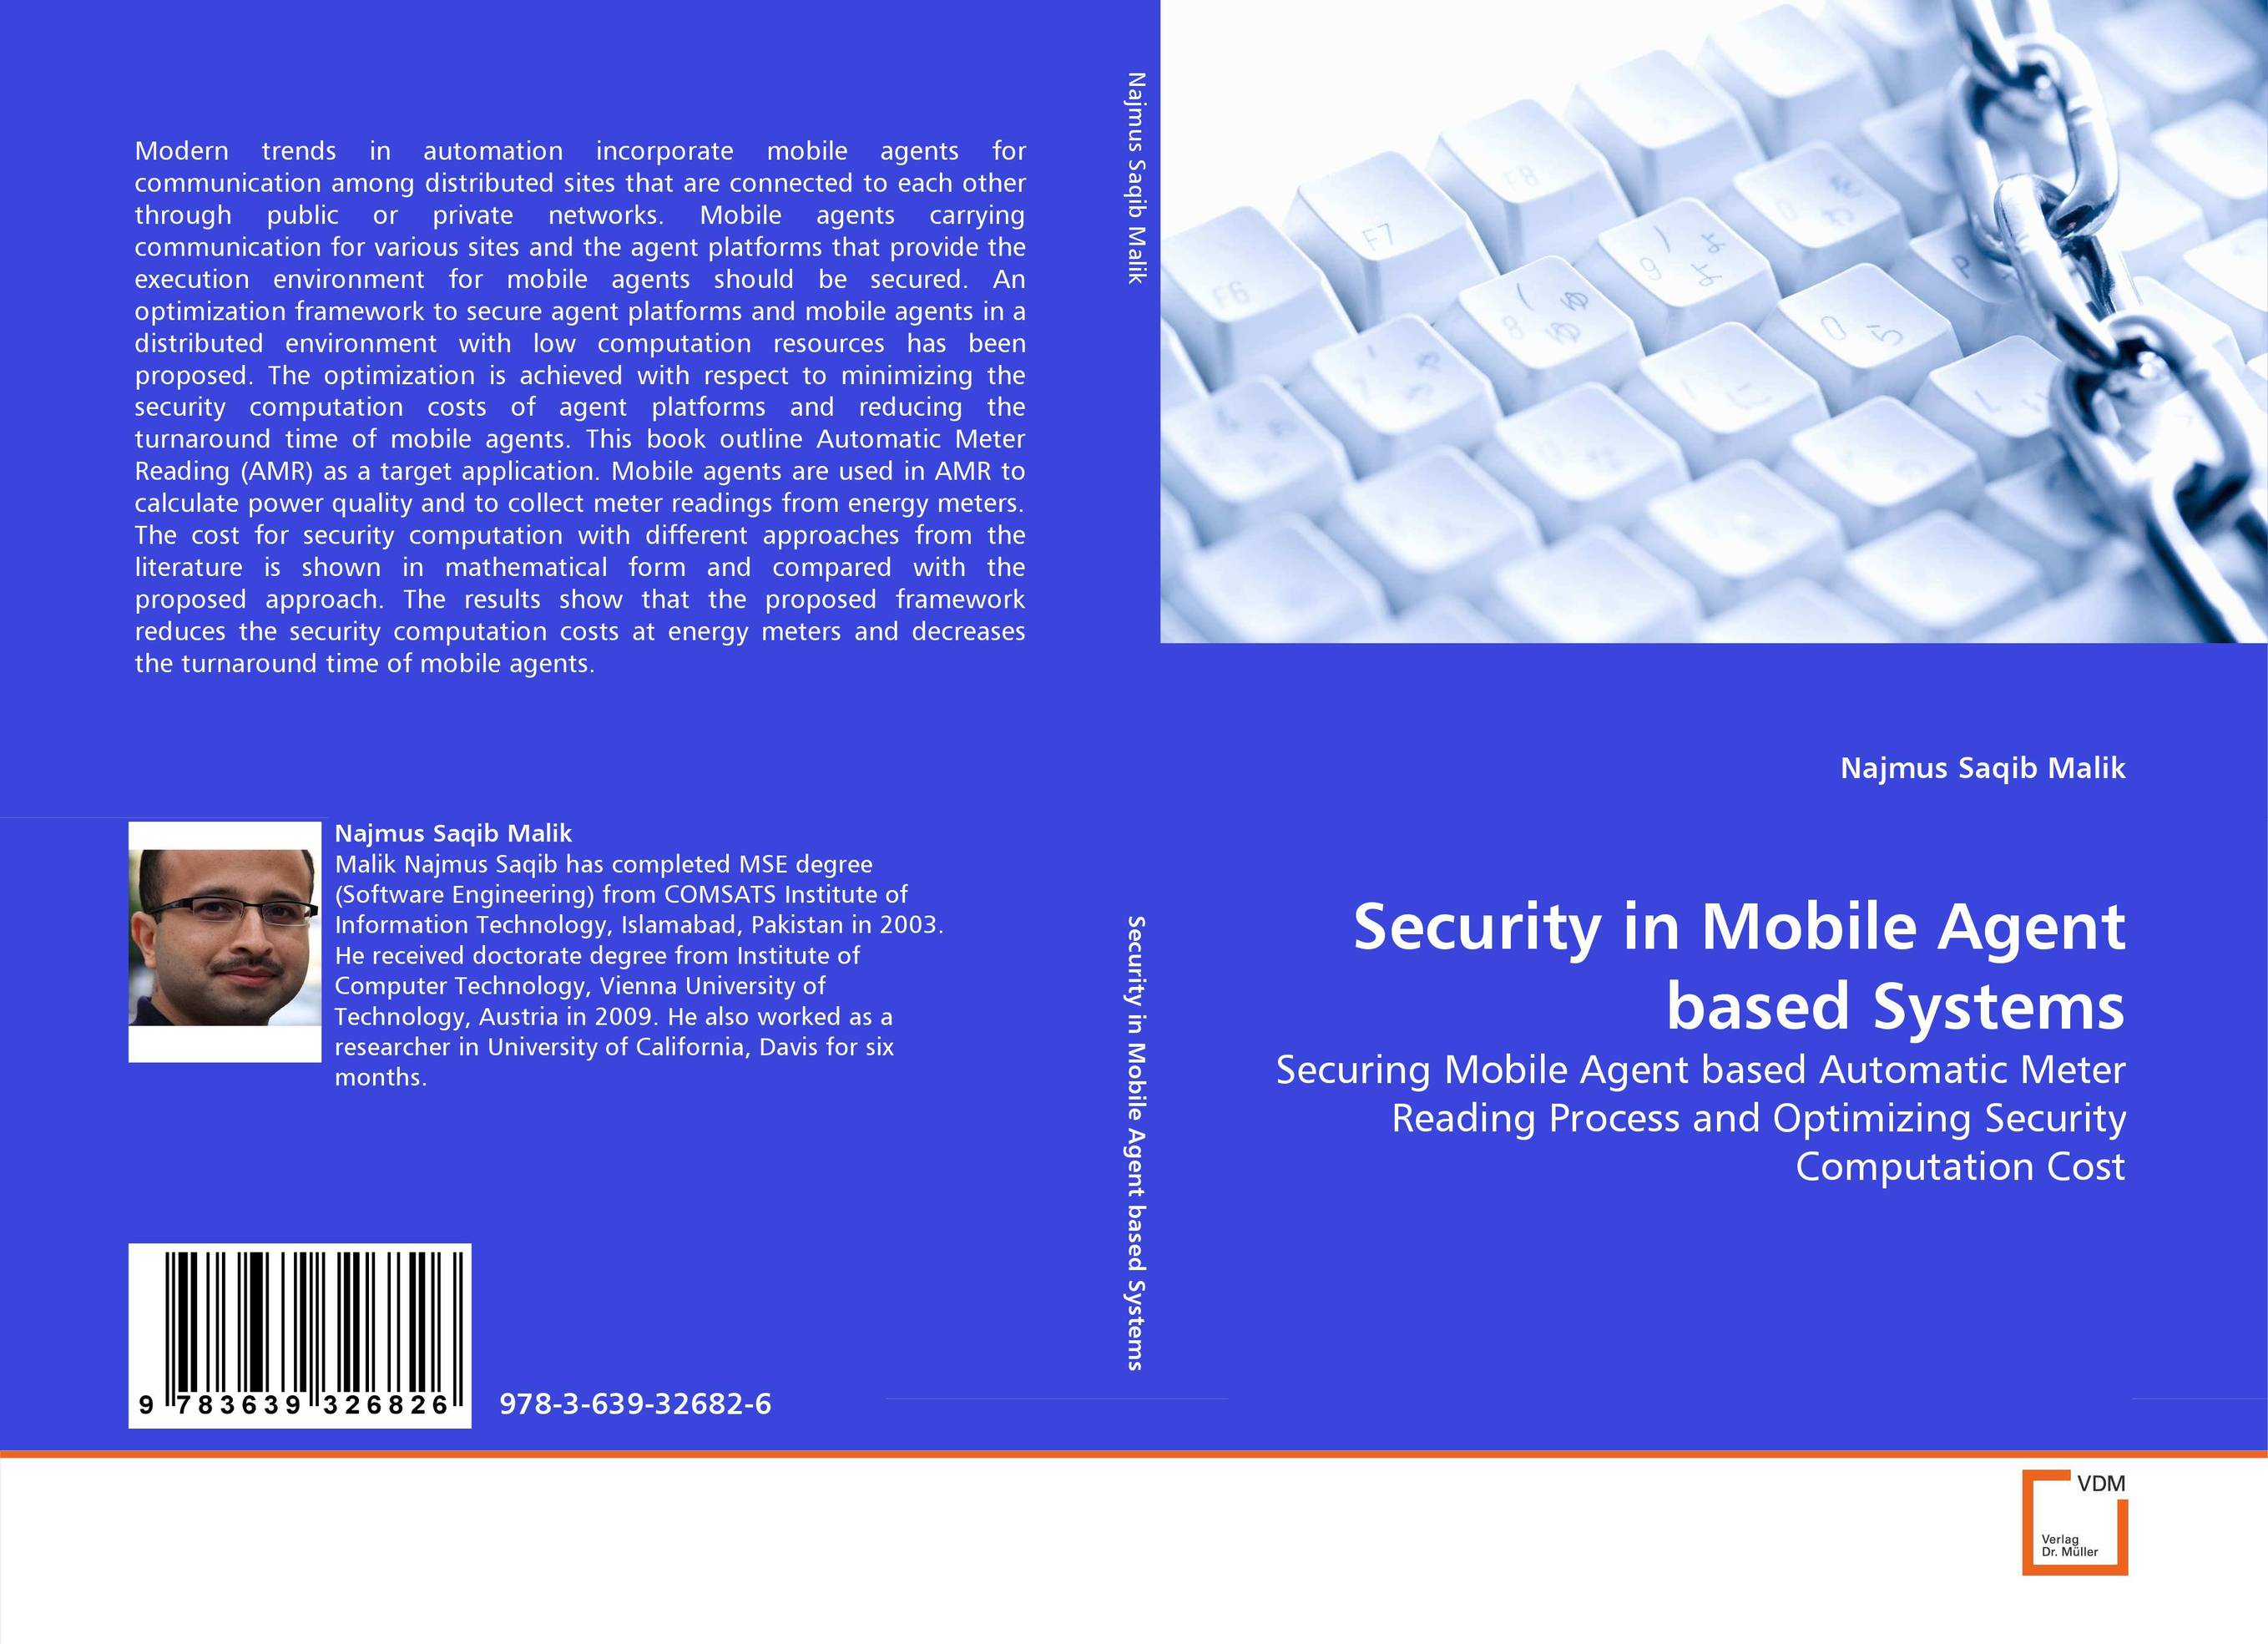 Security in Mobile Agent based Systems mobile agent technology